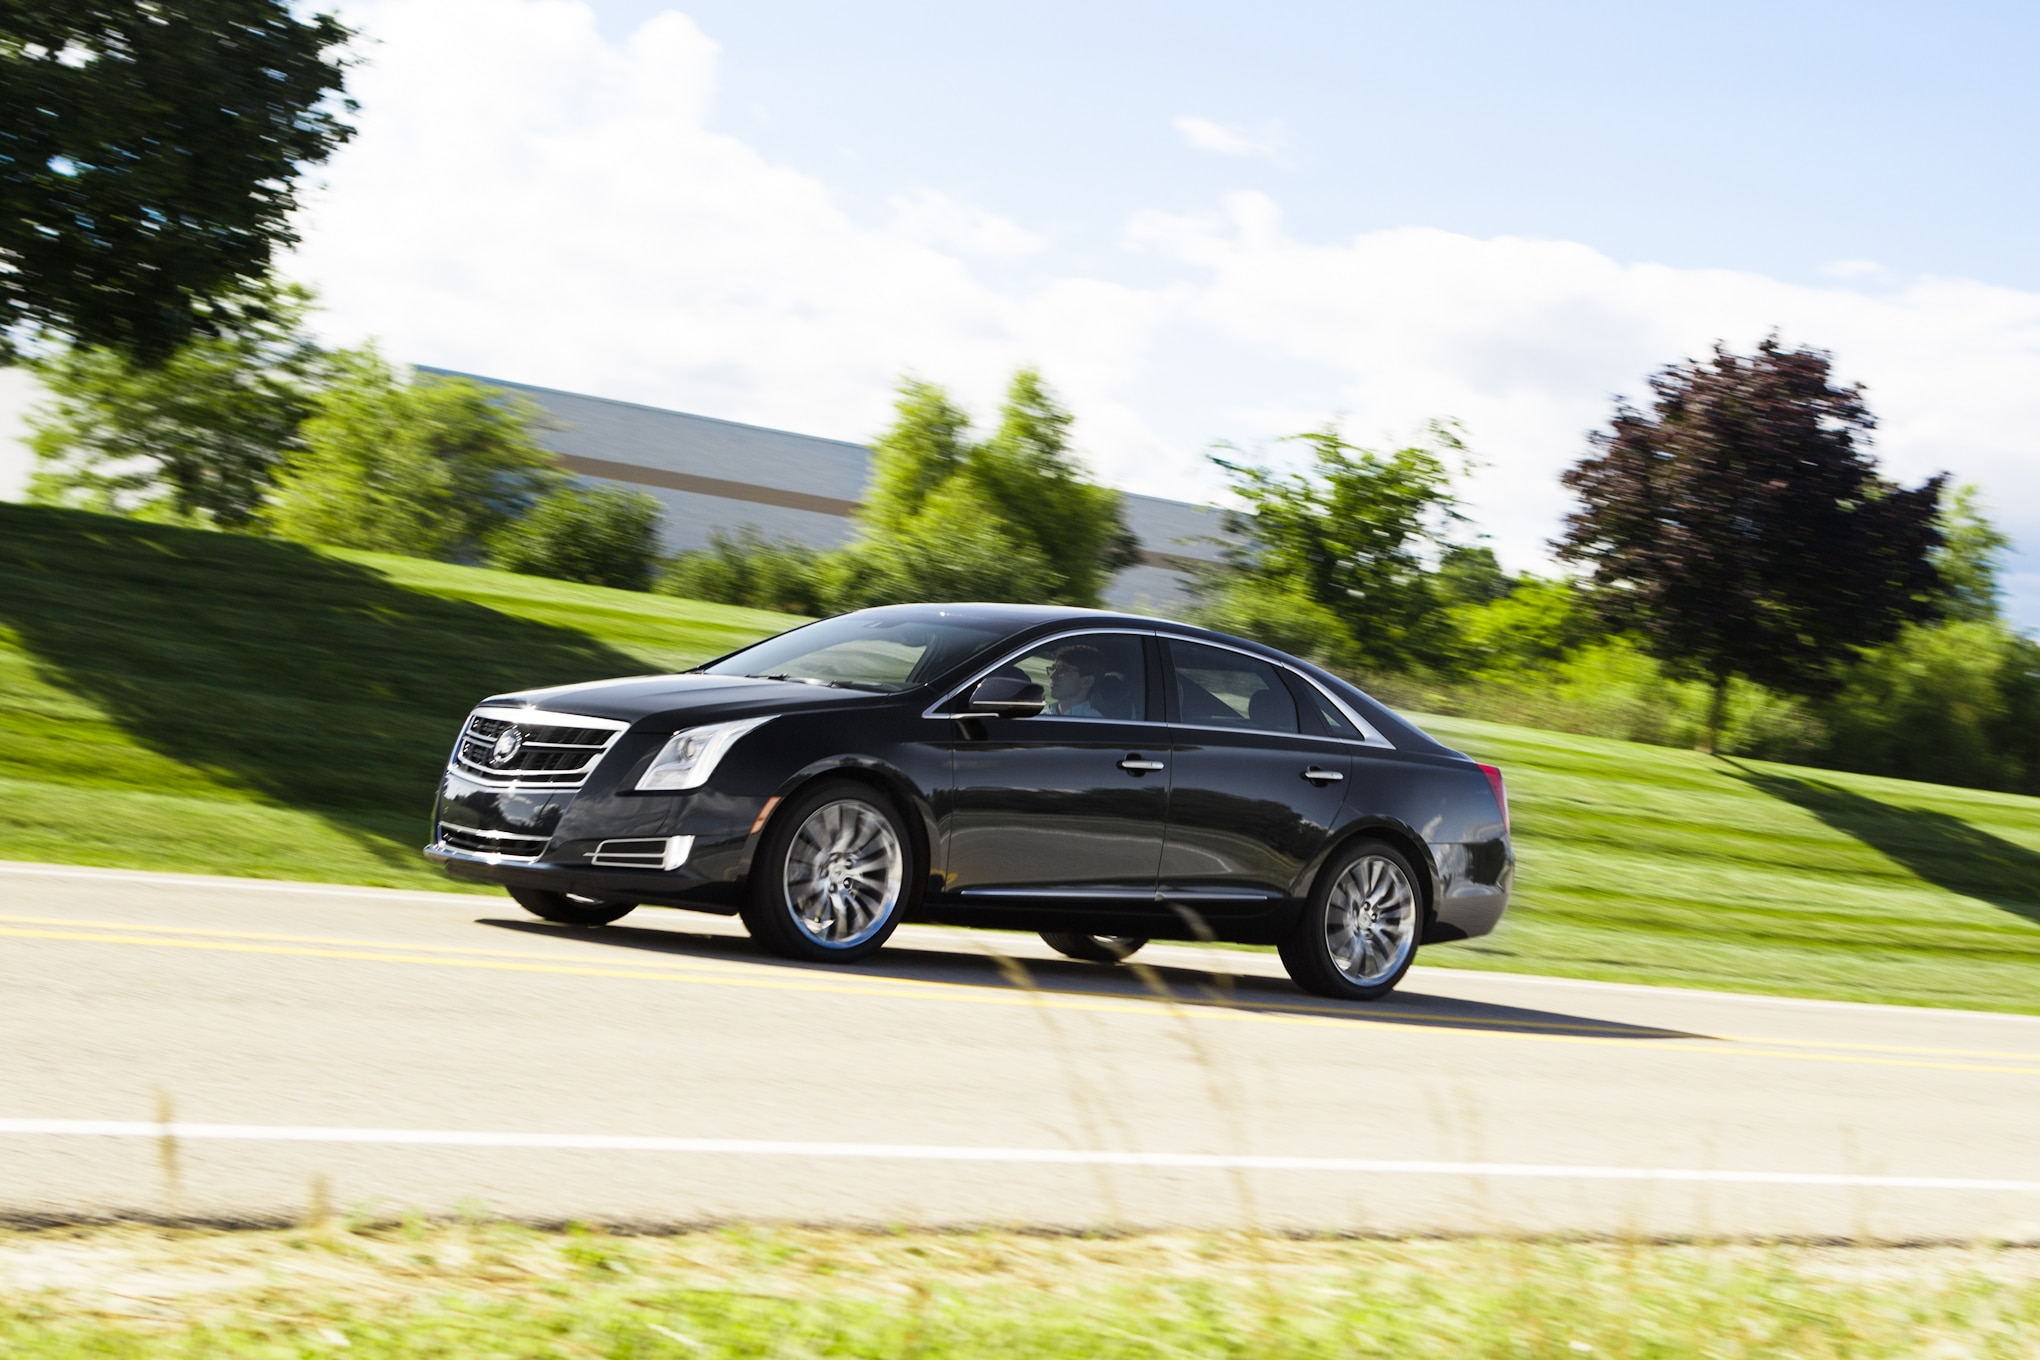 2014 cadillac xts vsport first drive automobile magazine. Black Bedroom Furniture Sets. Home Design Ideas